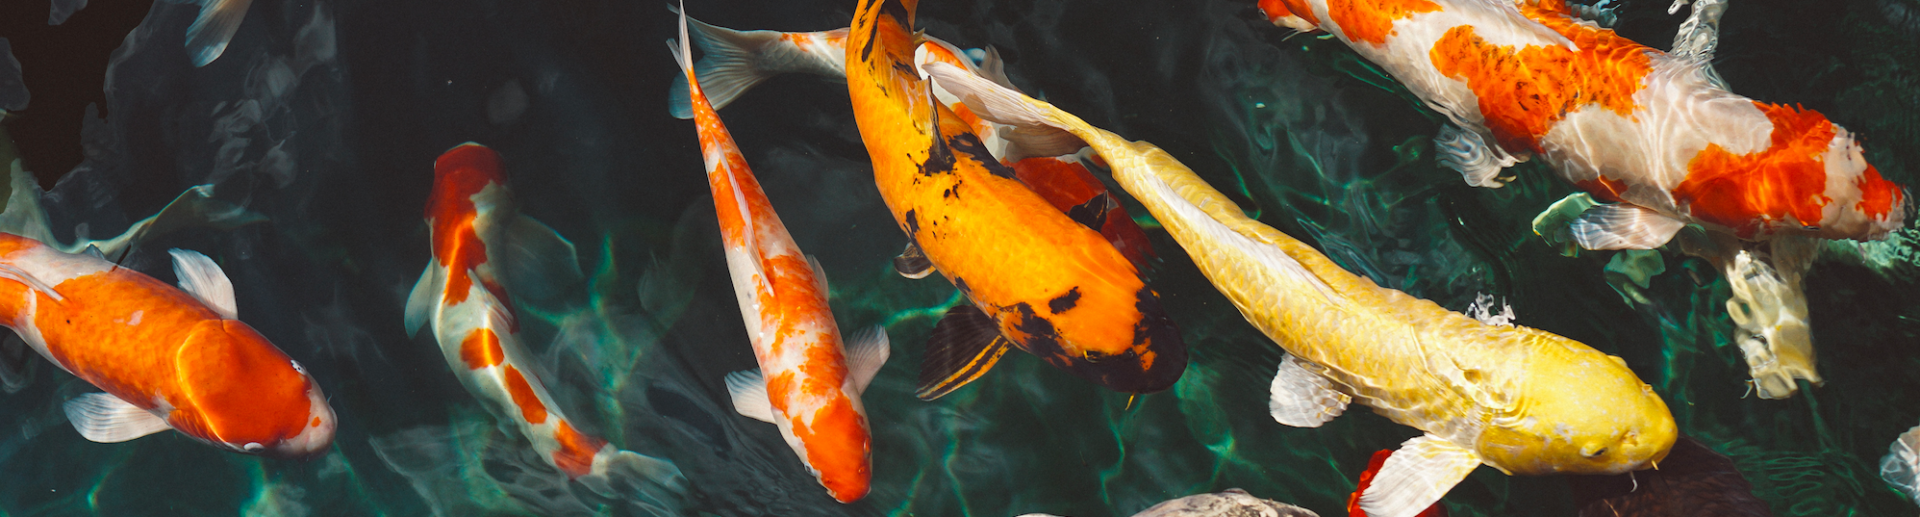 Things to consider before starting a koi fish pond hartz for Keeping koi in a pond